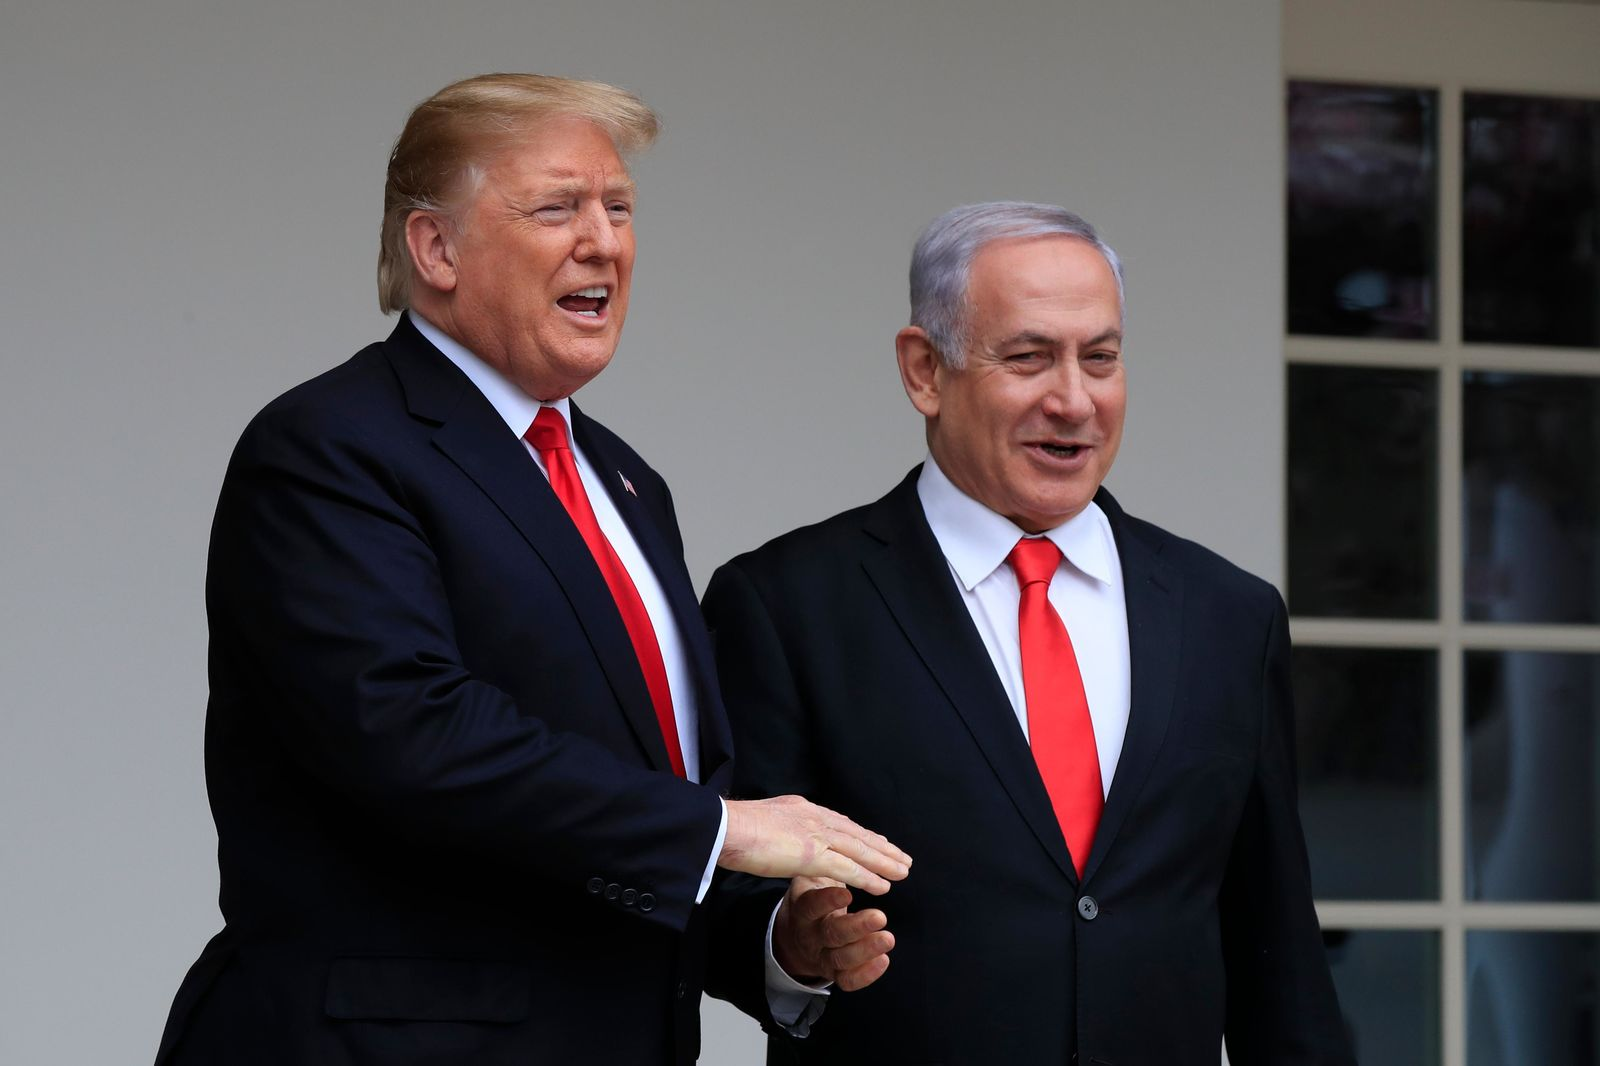 President Donald Trump welcomes visiting Israeli Prime Minister Benjamin Netanyahu to the White House in Washington, Monday, March 25, 2019. (AP Photo/Manuel Balce Ceneta) Presiden